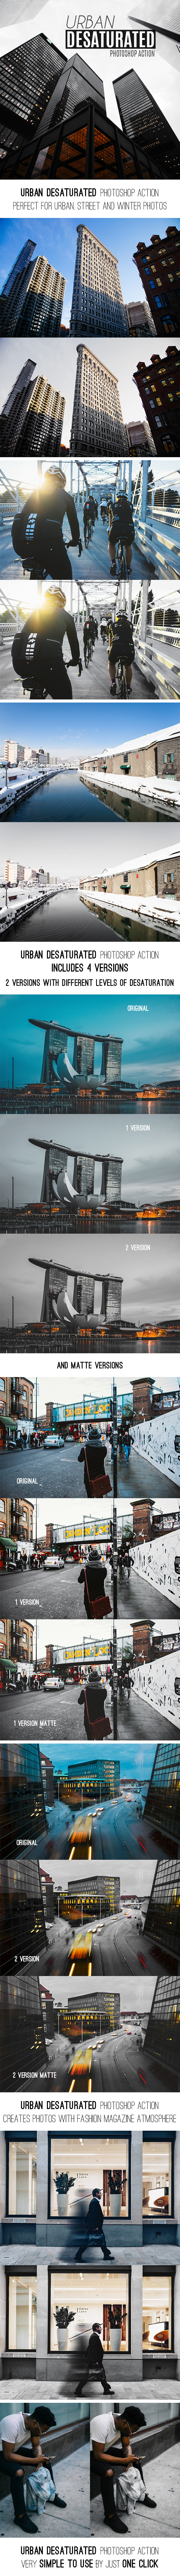 Urban Desaturated Photoshop Action - Photo Effects Actions